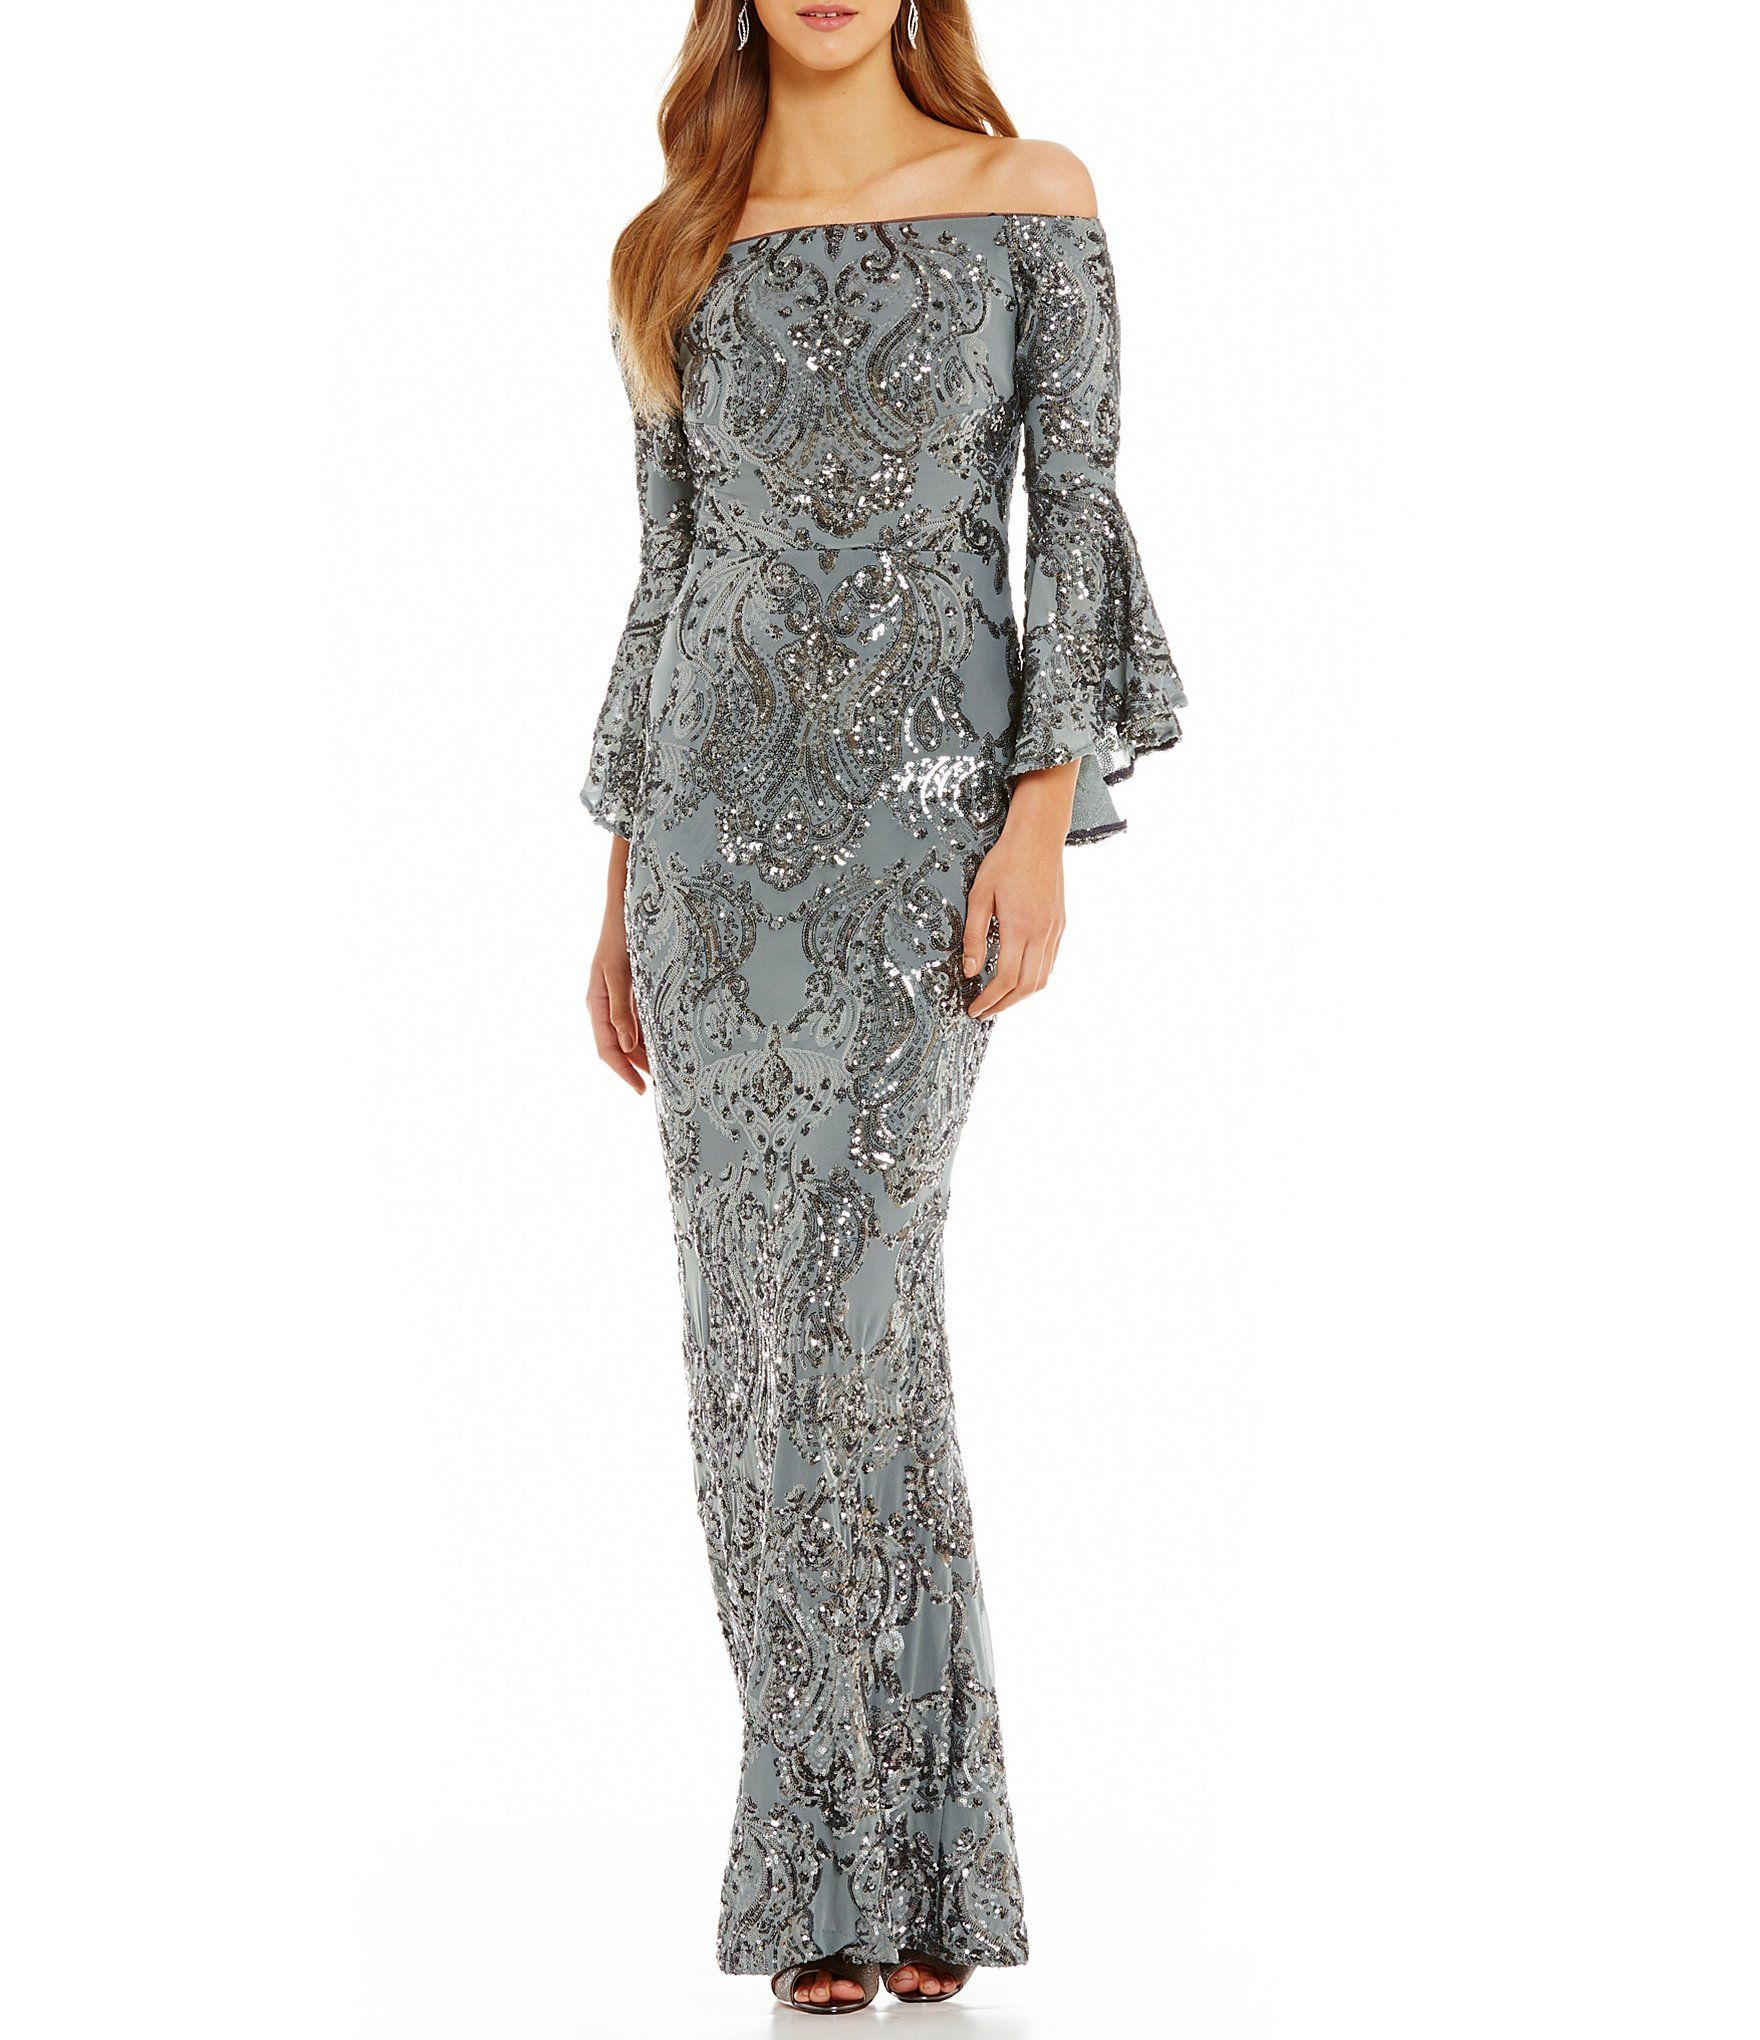 9fa1af55f84 Shop for Betsy   Adam Sequined Off-the-Shoulder Flutter Sleeve Sequined Gown  at Dillards.com. Visit Dillards.com to find clothing